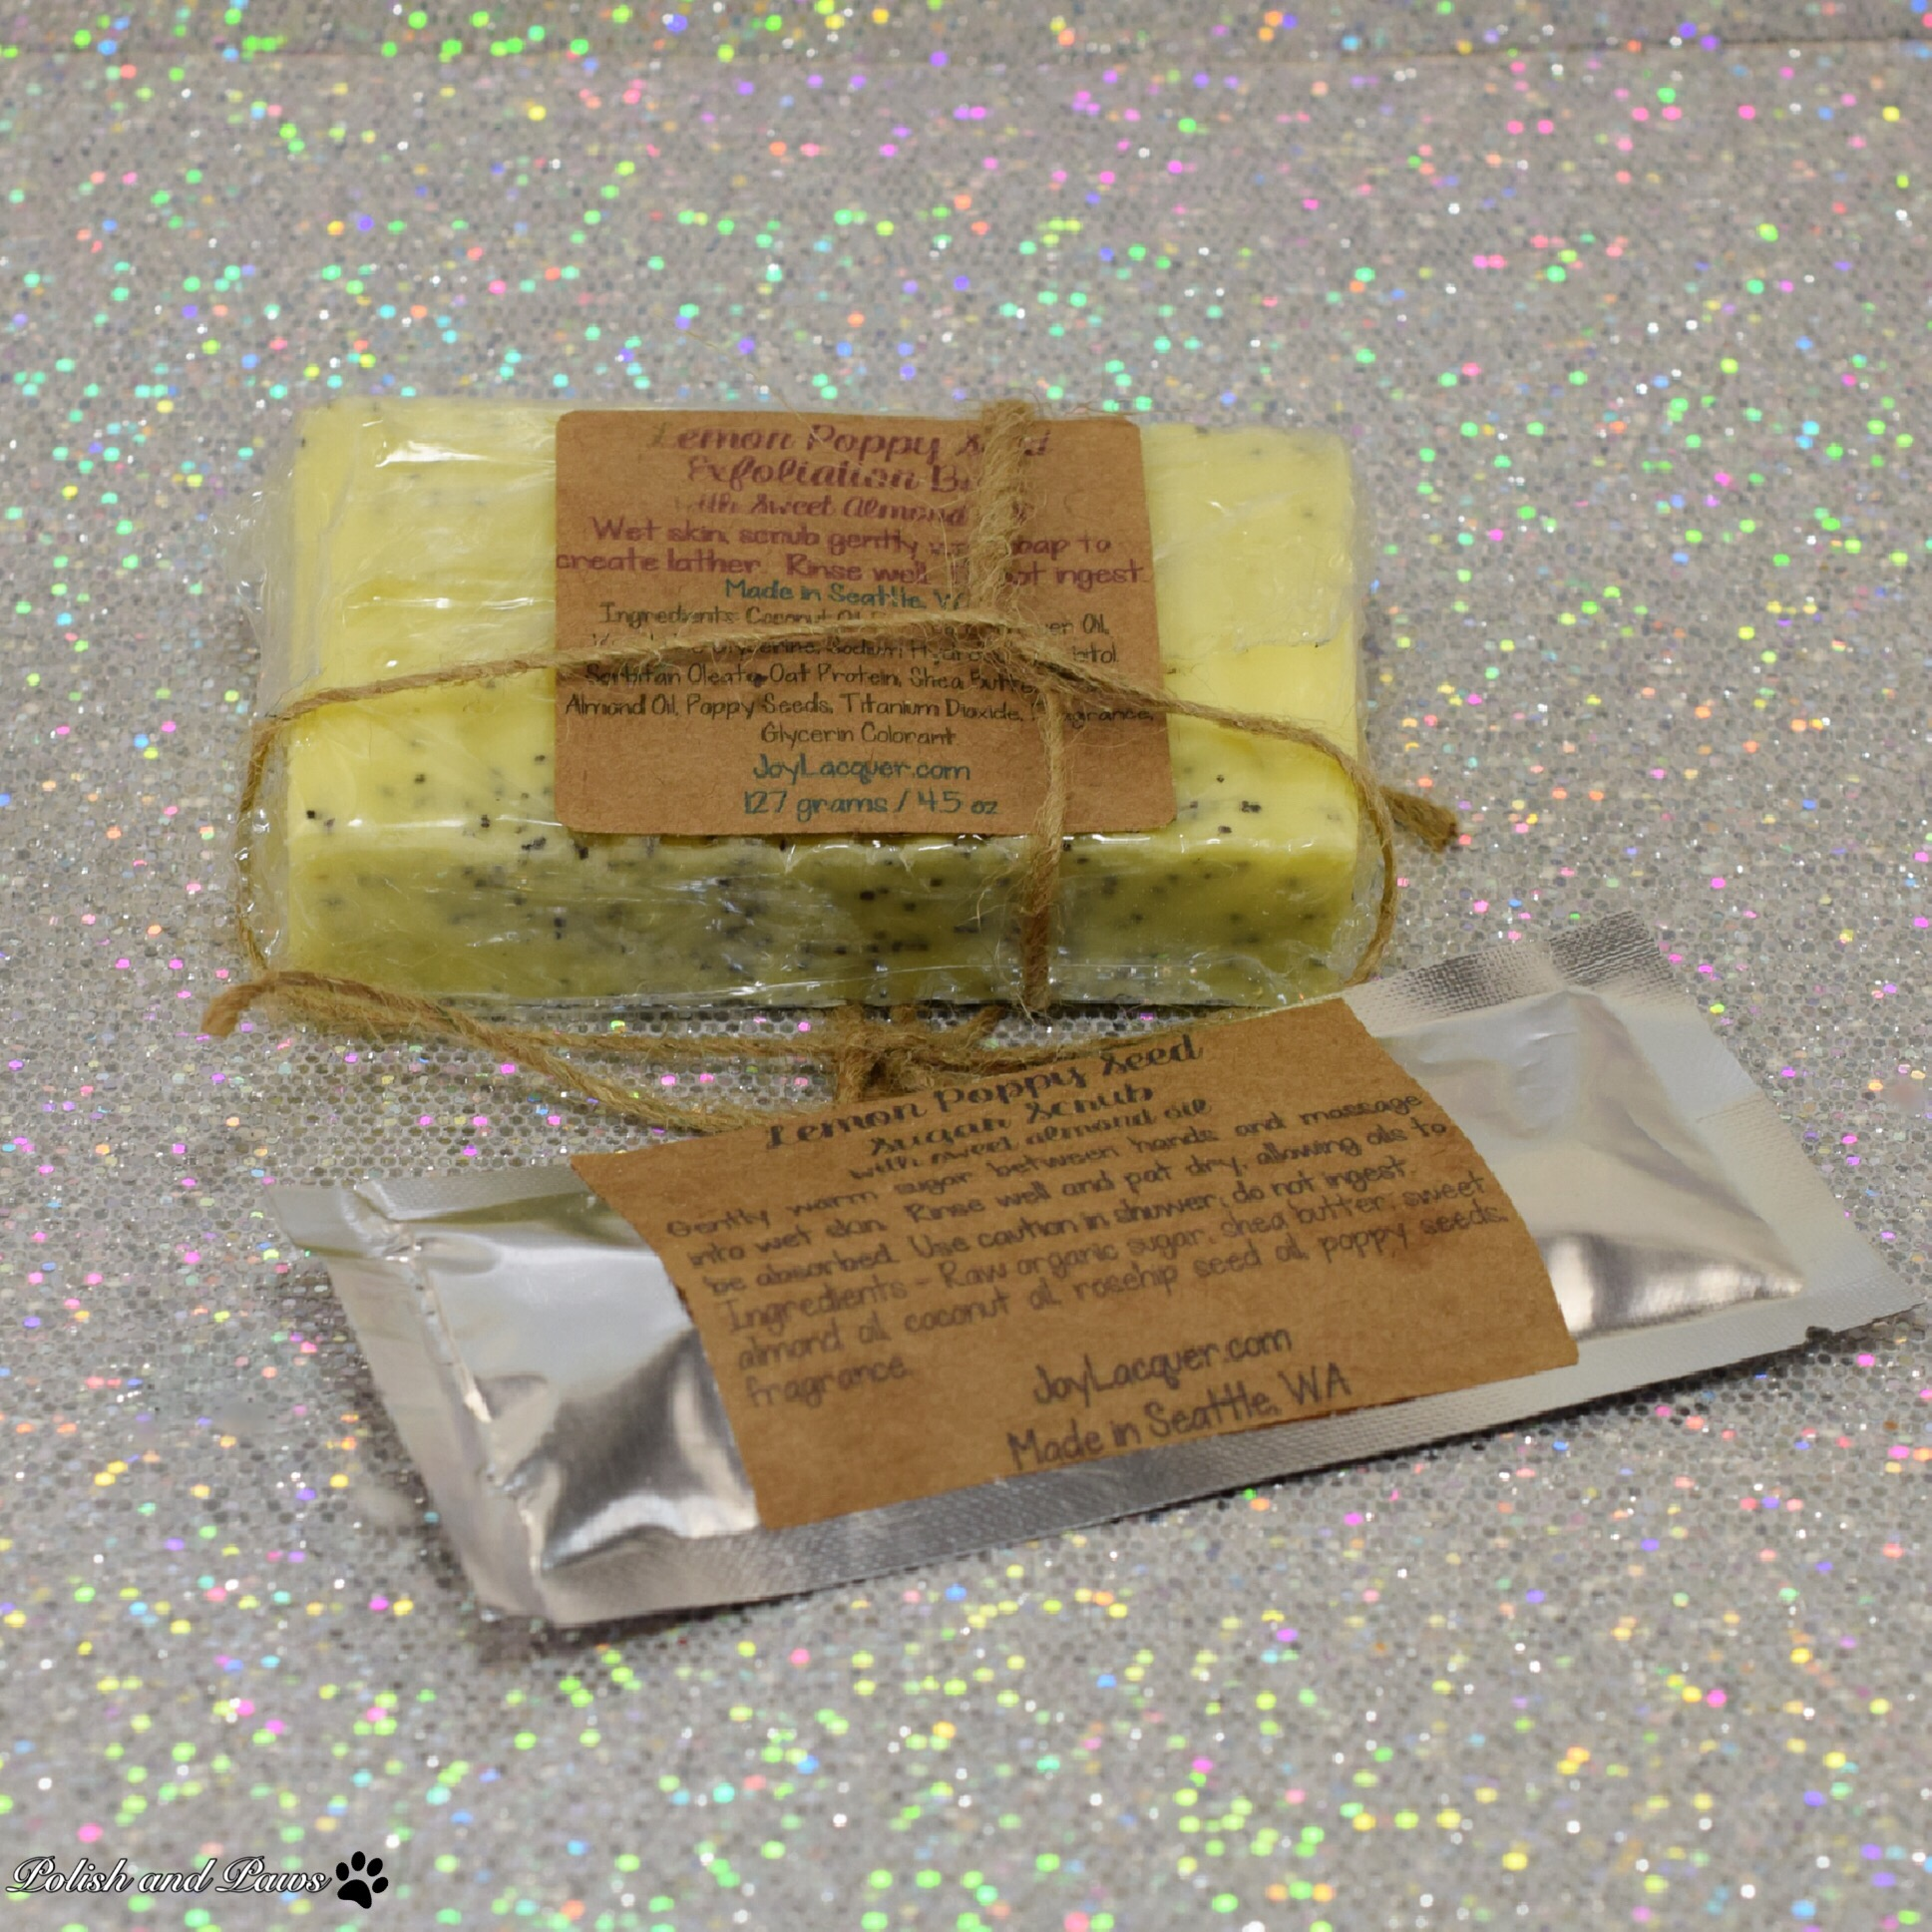 Joy Lacquer Lemon Poppy Exfoliating Bar and Sugar Scrub